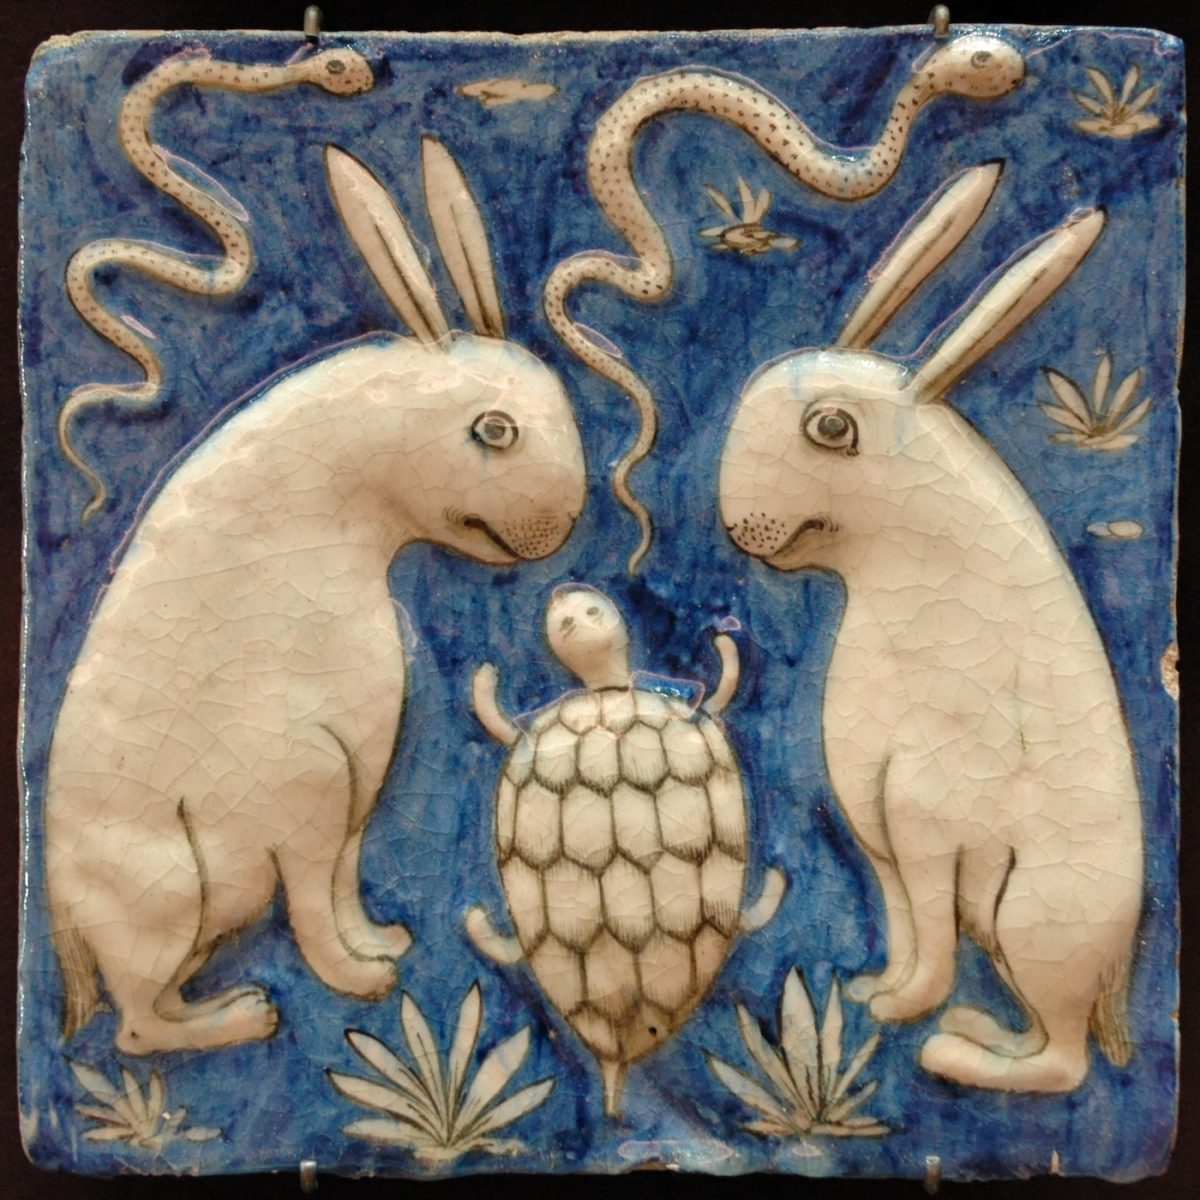 Tile with two rabbits, two snakes and a tortoise, illustration for thirteenth-century Marvels of Things Created and Miraculous Aspects of Things Existing byZakariya al-Qazwini, earthenware, moulded and underglaze-painted decoration, Iran, nineteenth century (Musée du Louvre, Paris)